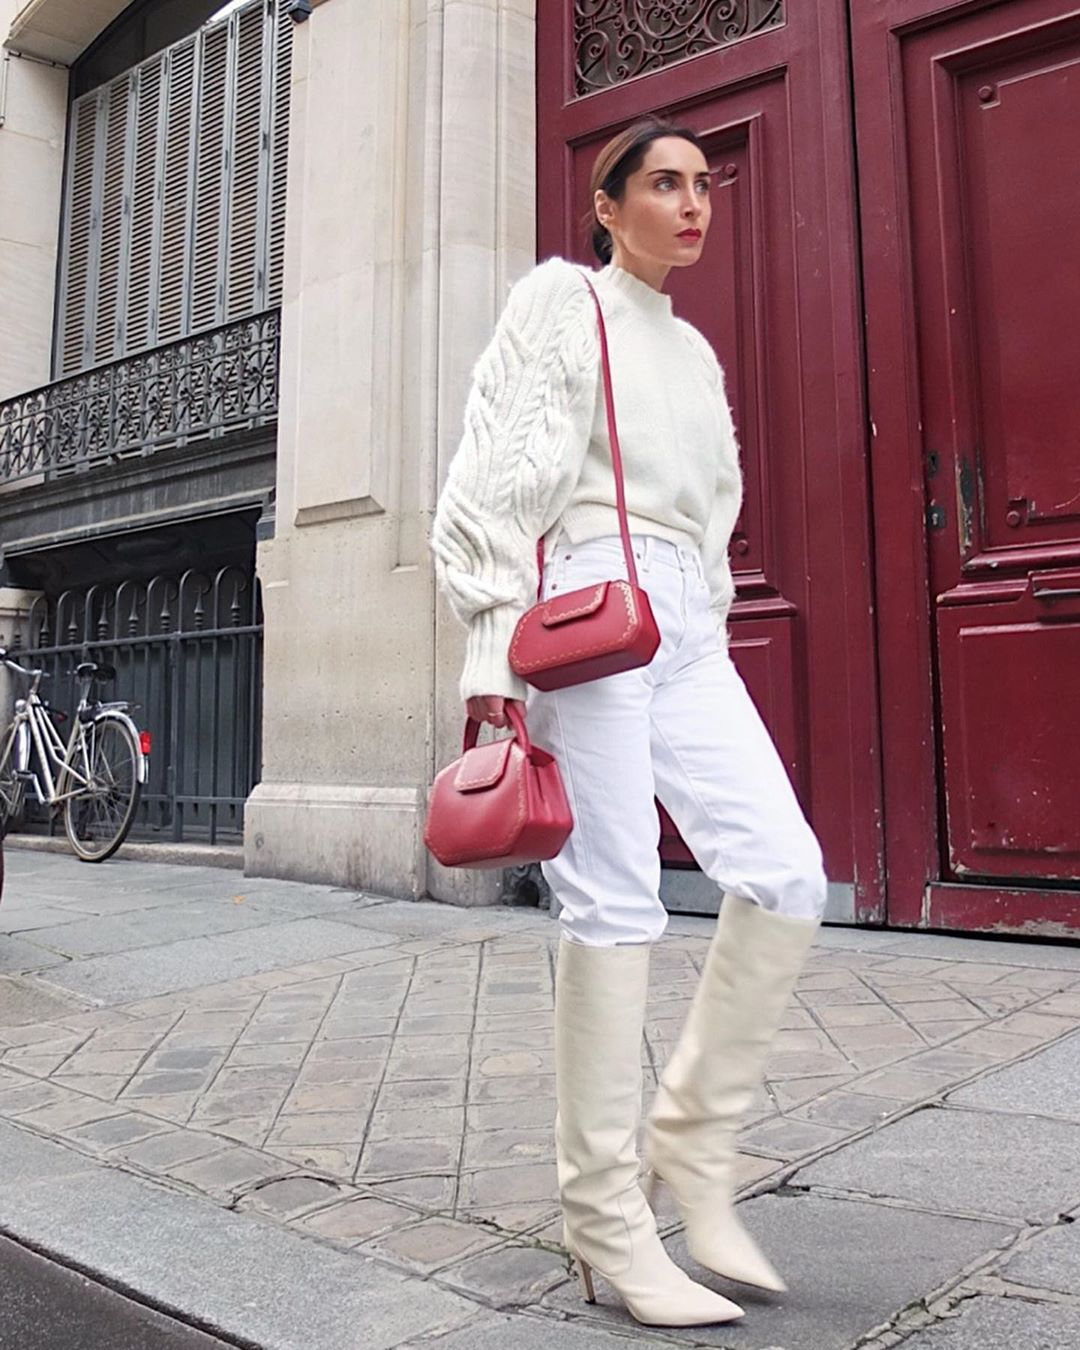 This Winter White Look Is One to Recreate